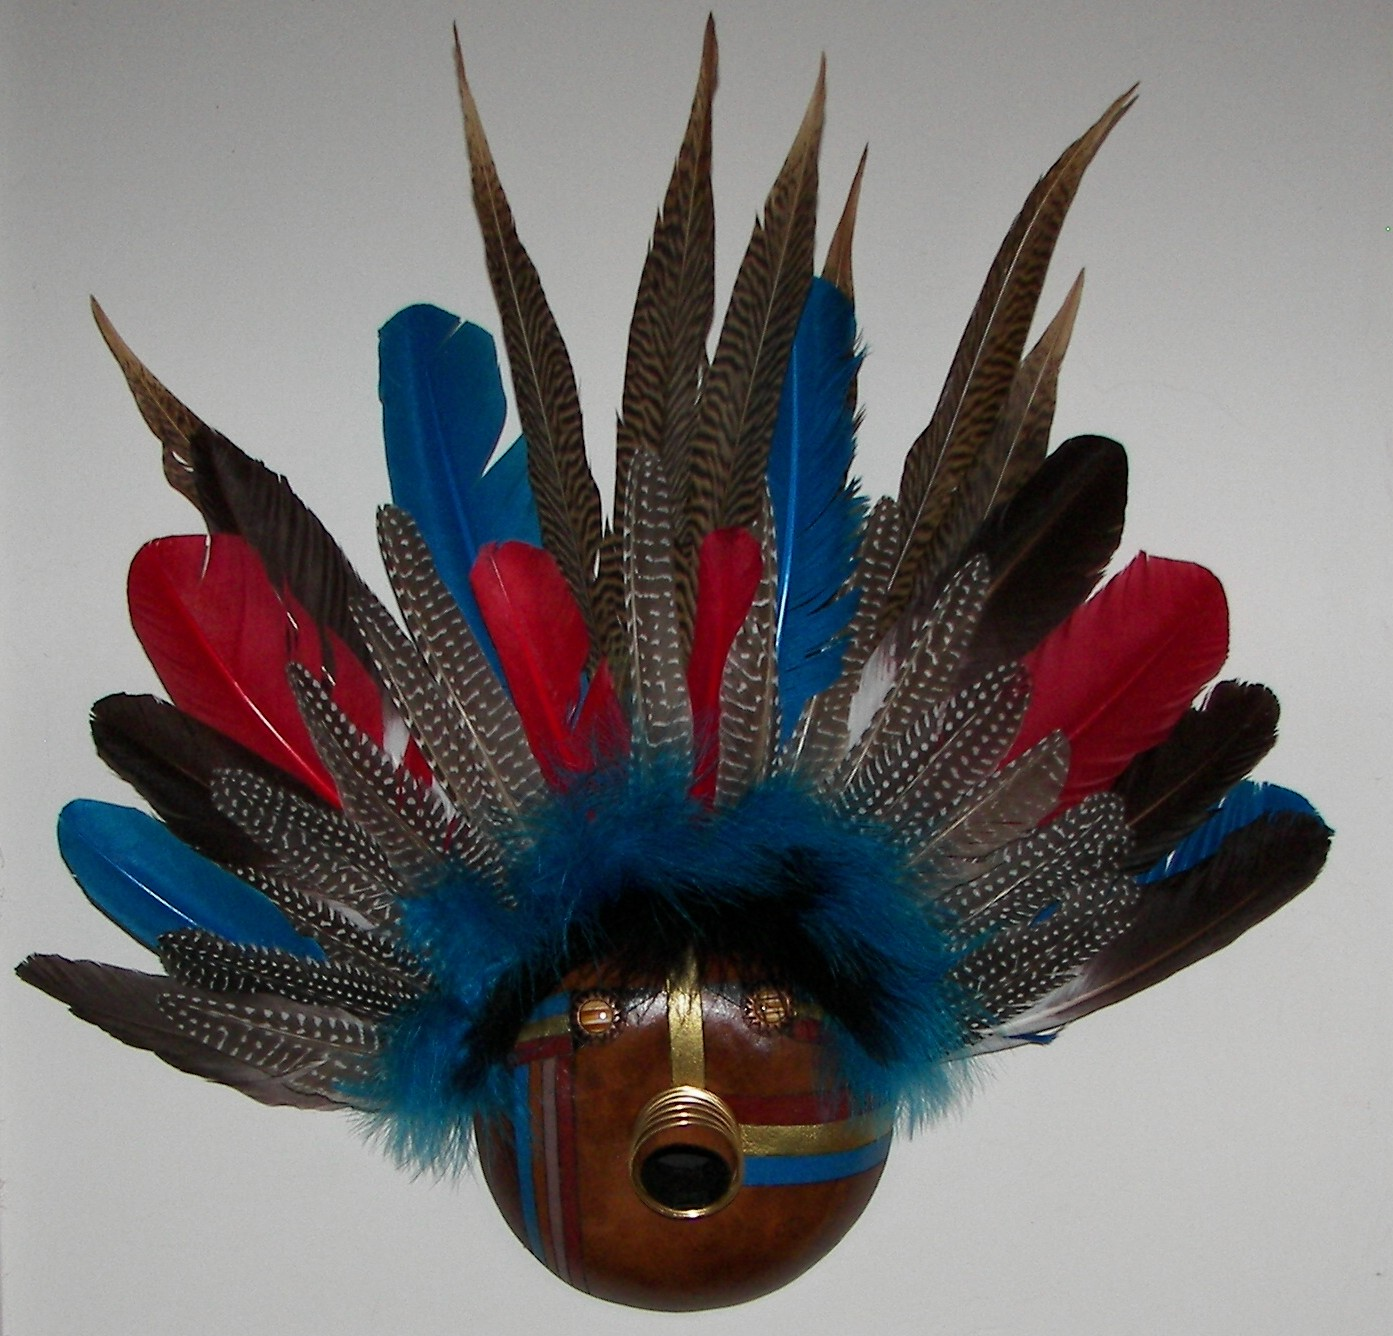 gourd-mask-blue-feathers-mixed